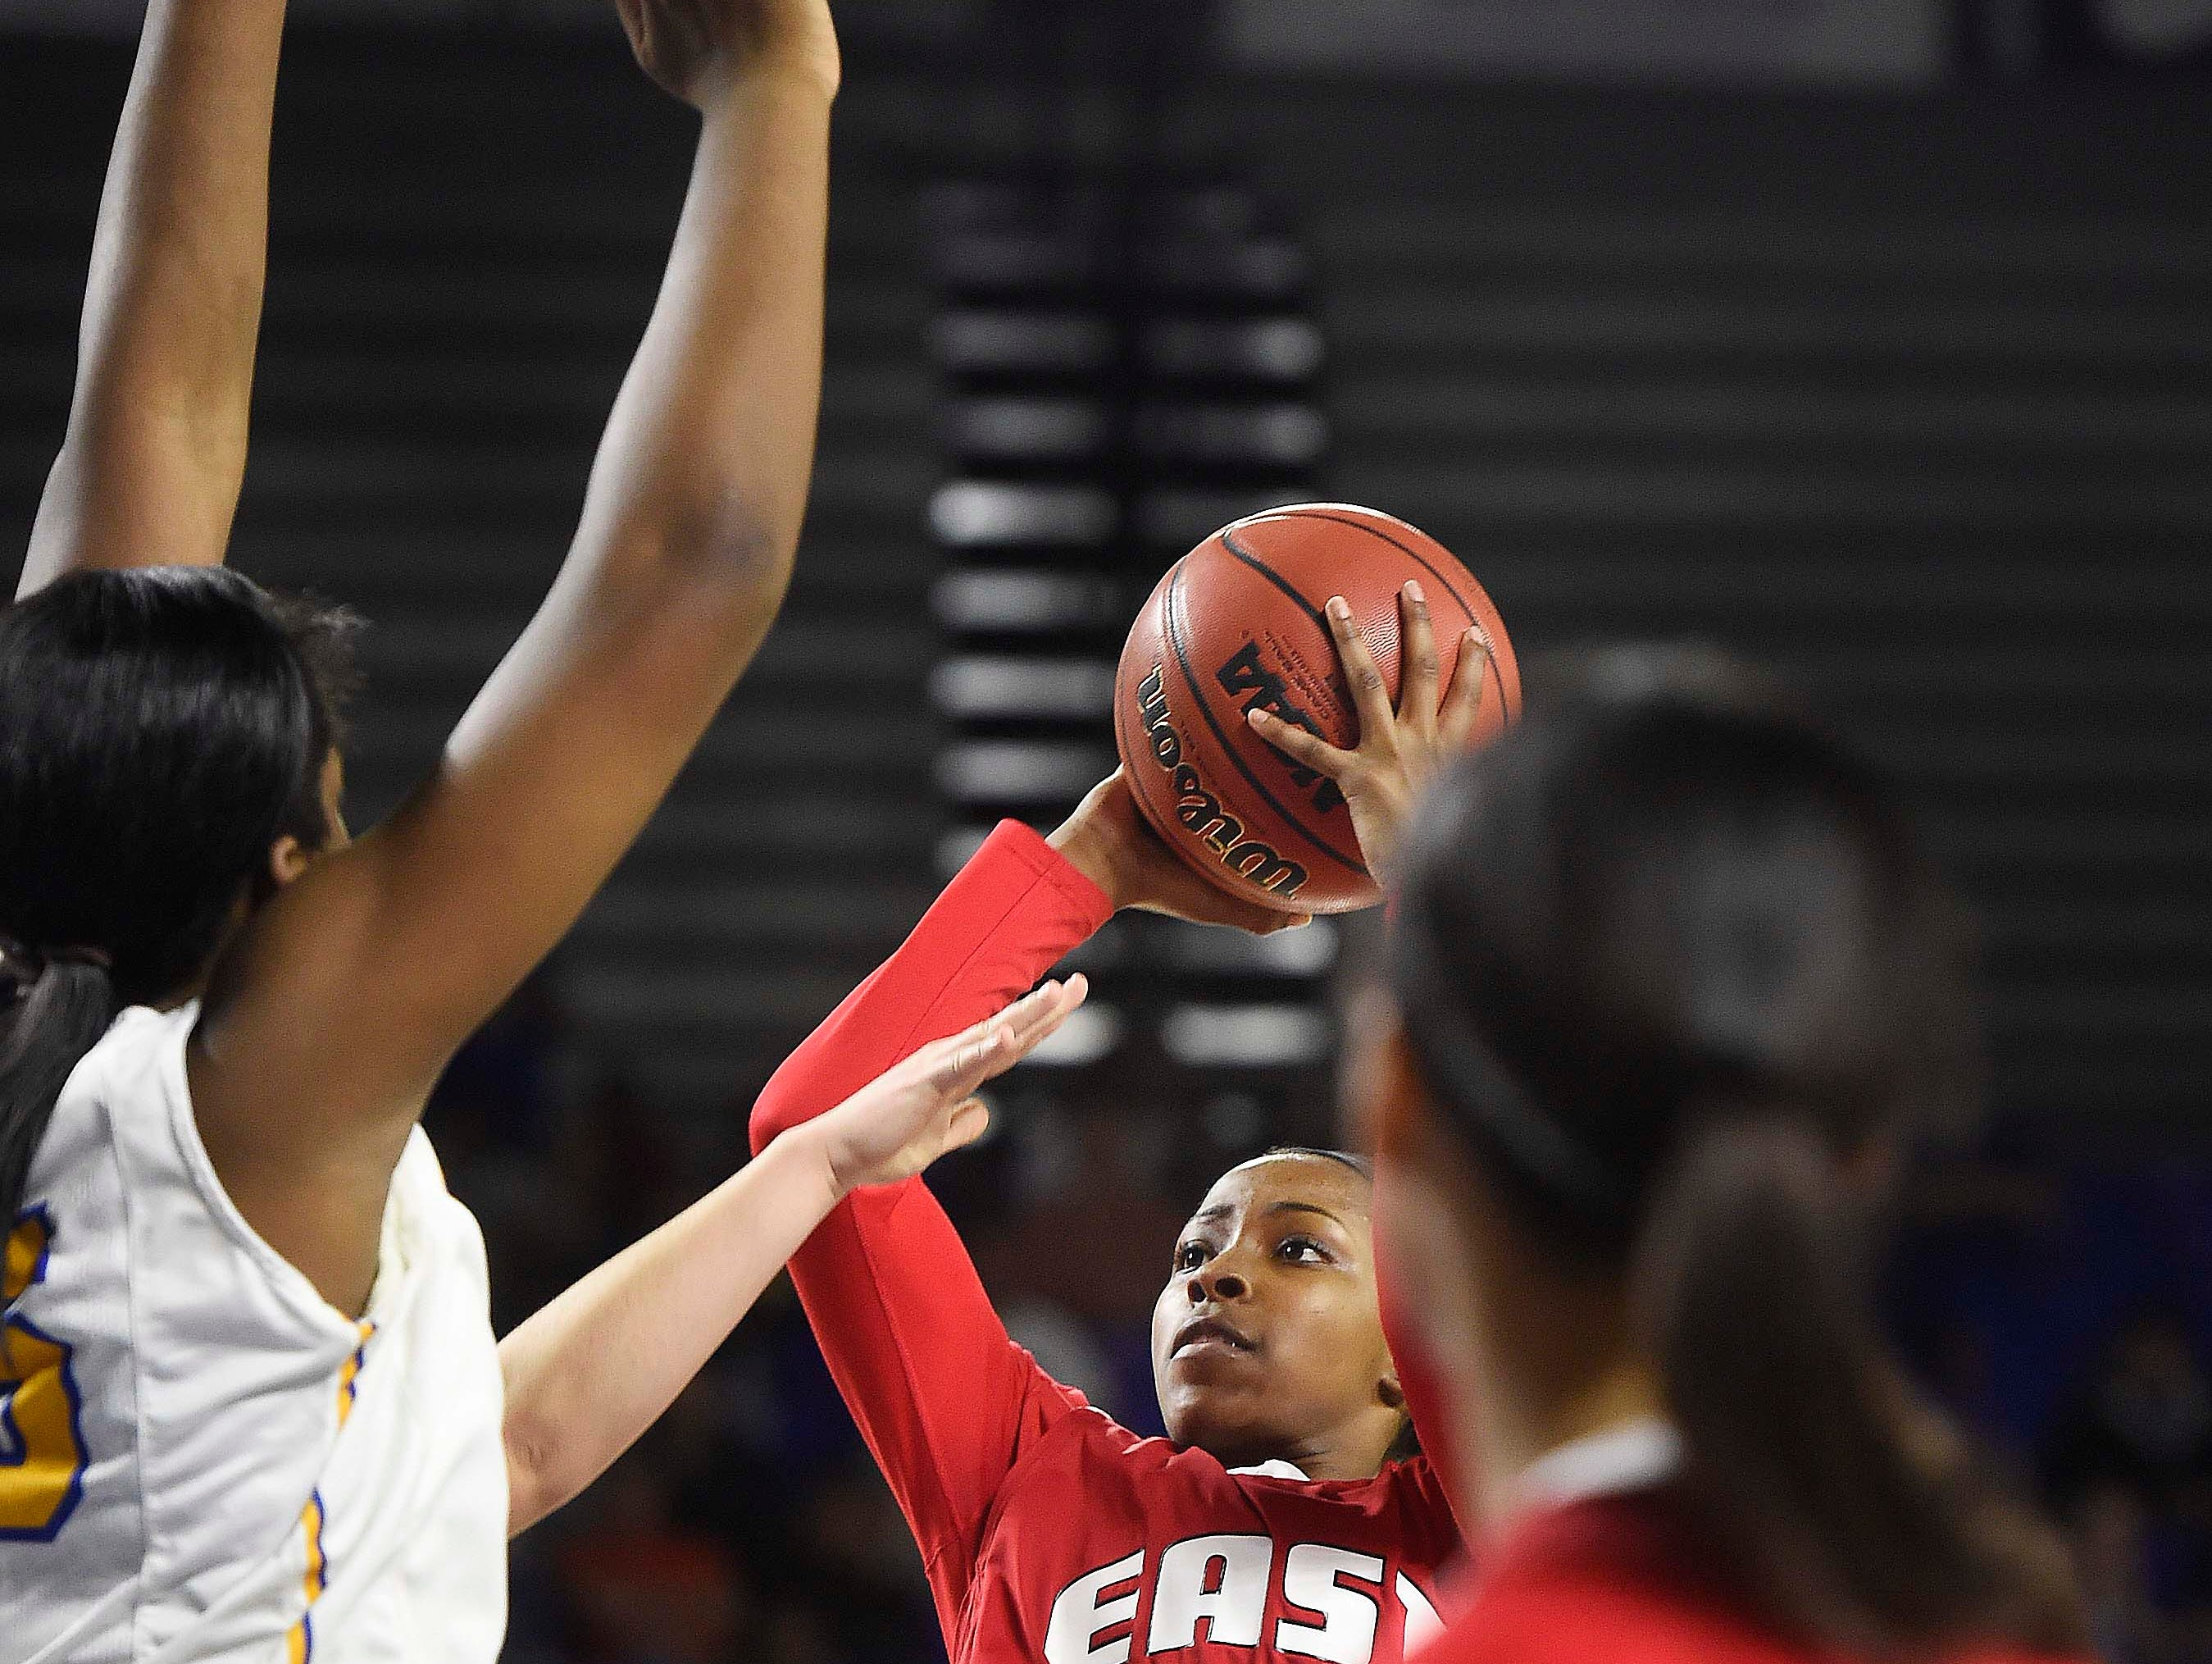 East's Erica Haynes-Overton (20) shoots in the lane as East Nashville wins over Westview High School 35-32 in the Division I Class AA Girl's basketball semi-finals at the Murphy Center on MTSU's campus March 11, 2016 in Murfreesboro, Tenn.